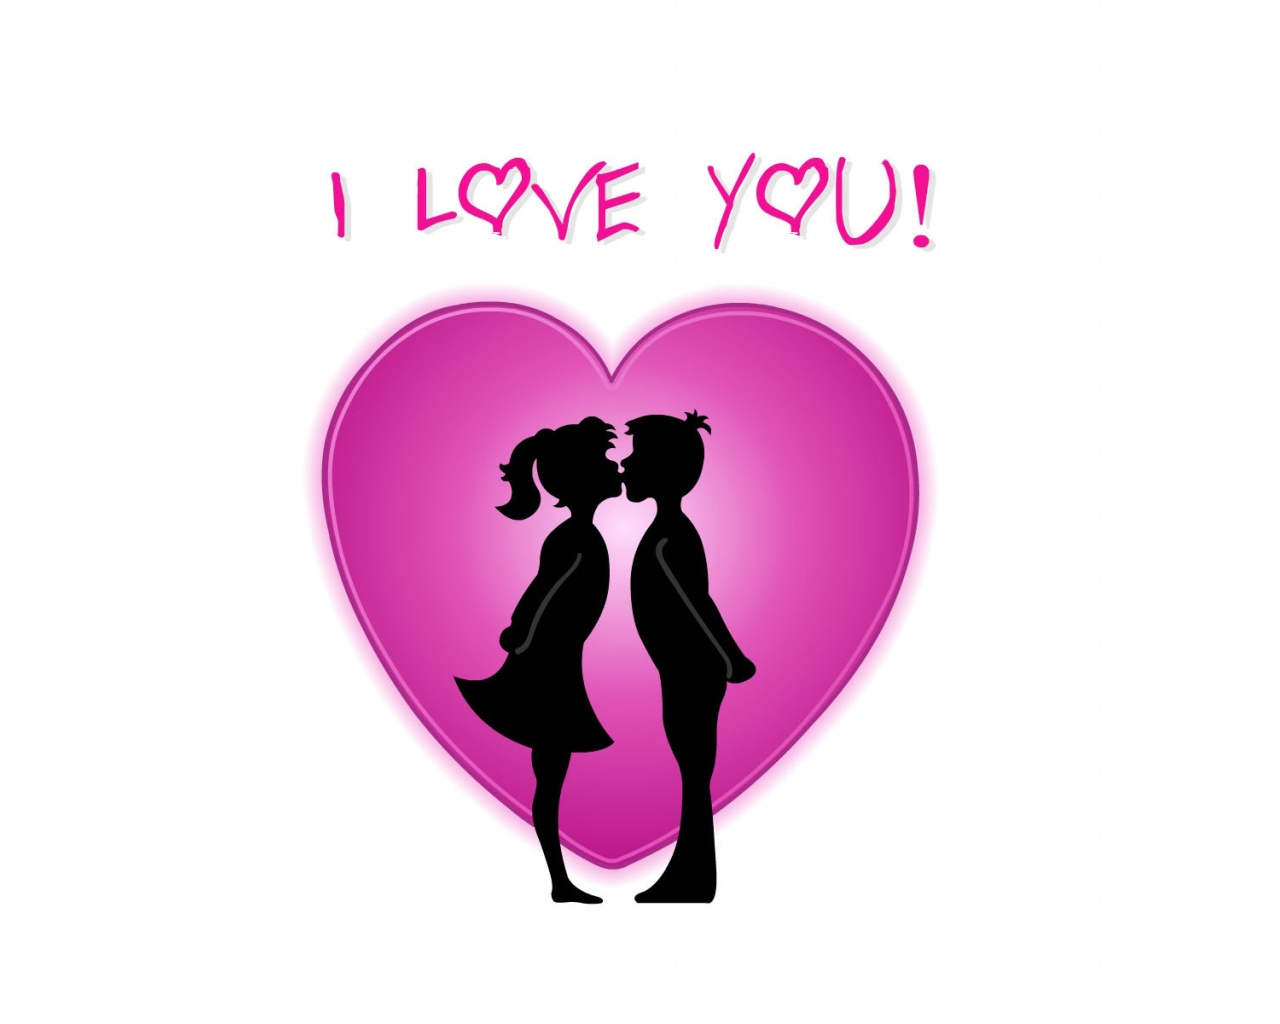 Desktop Wallpaper I Love You : 1280x1024 I love you desktop Pc and Mac wallpaper